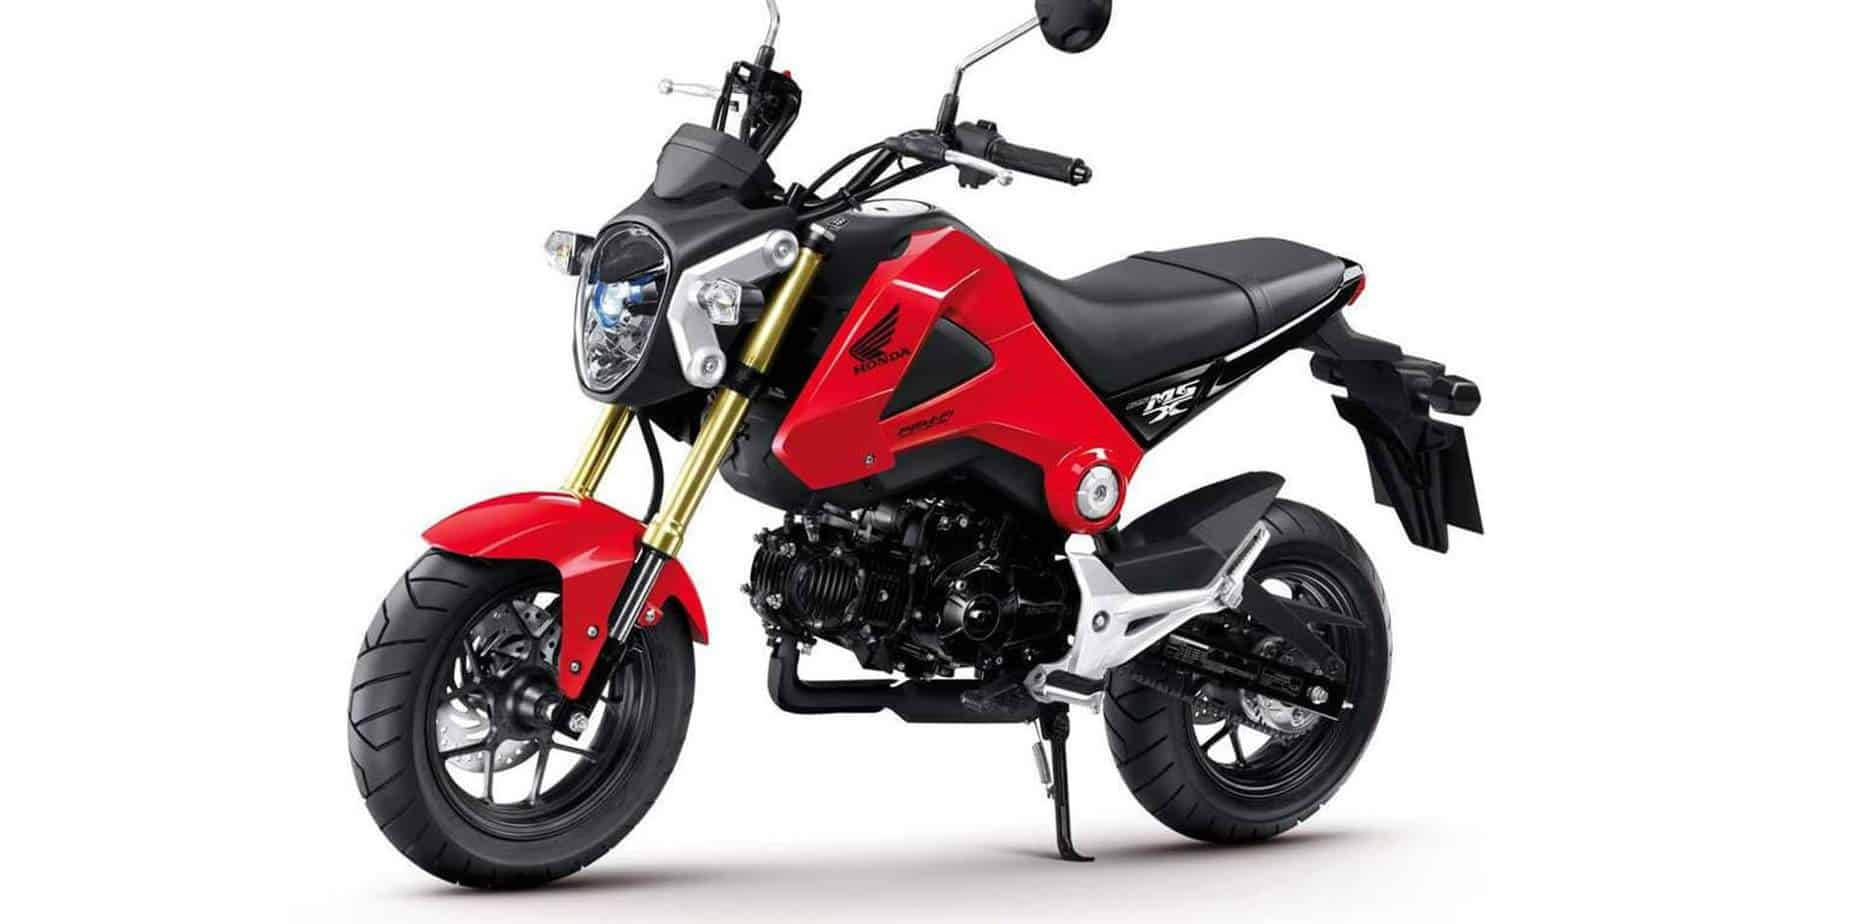 Honda MSX 125 car review - bold personality price of 50 million 1